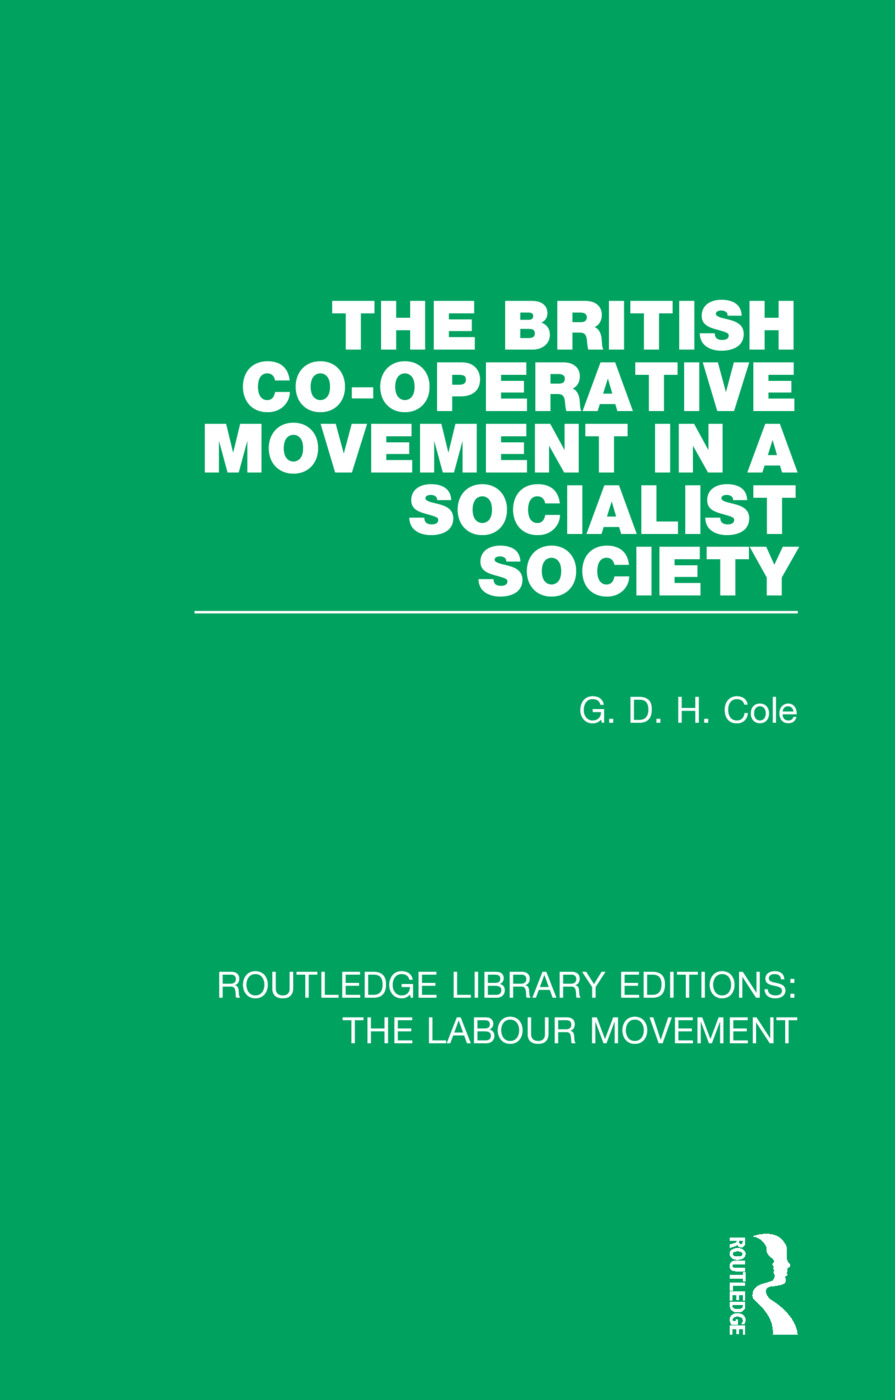 The British Co-operative Movement in a Socialist Society book cover